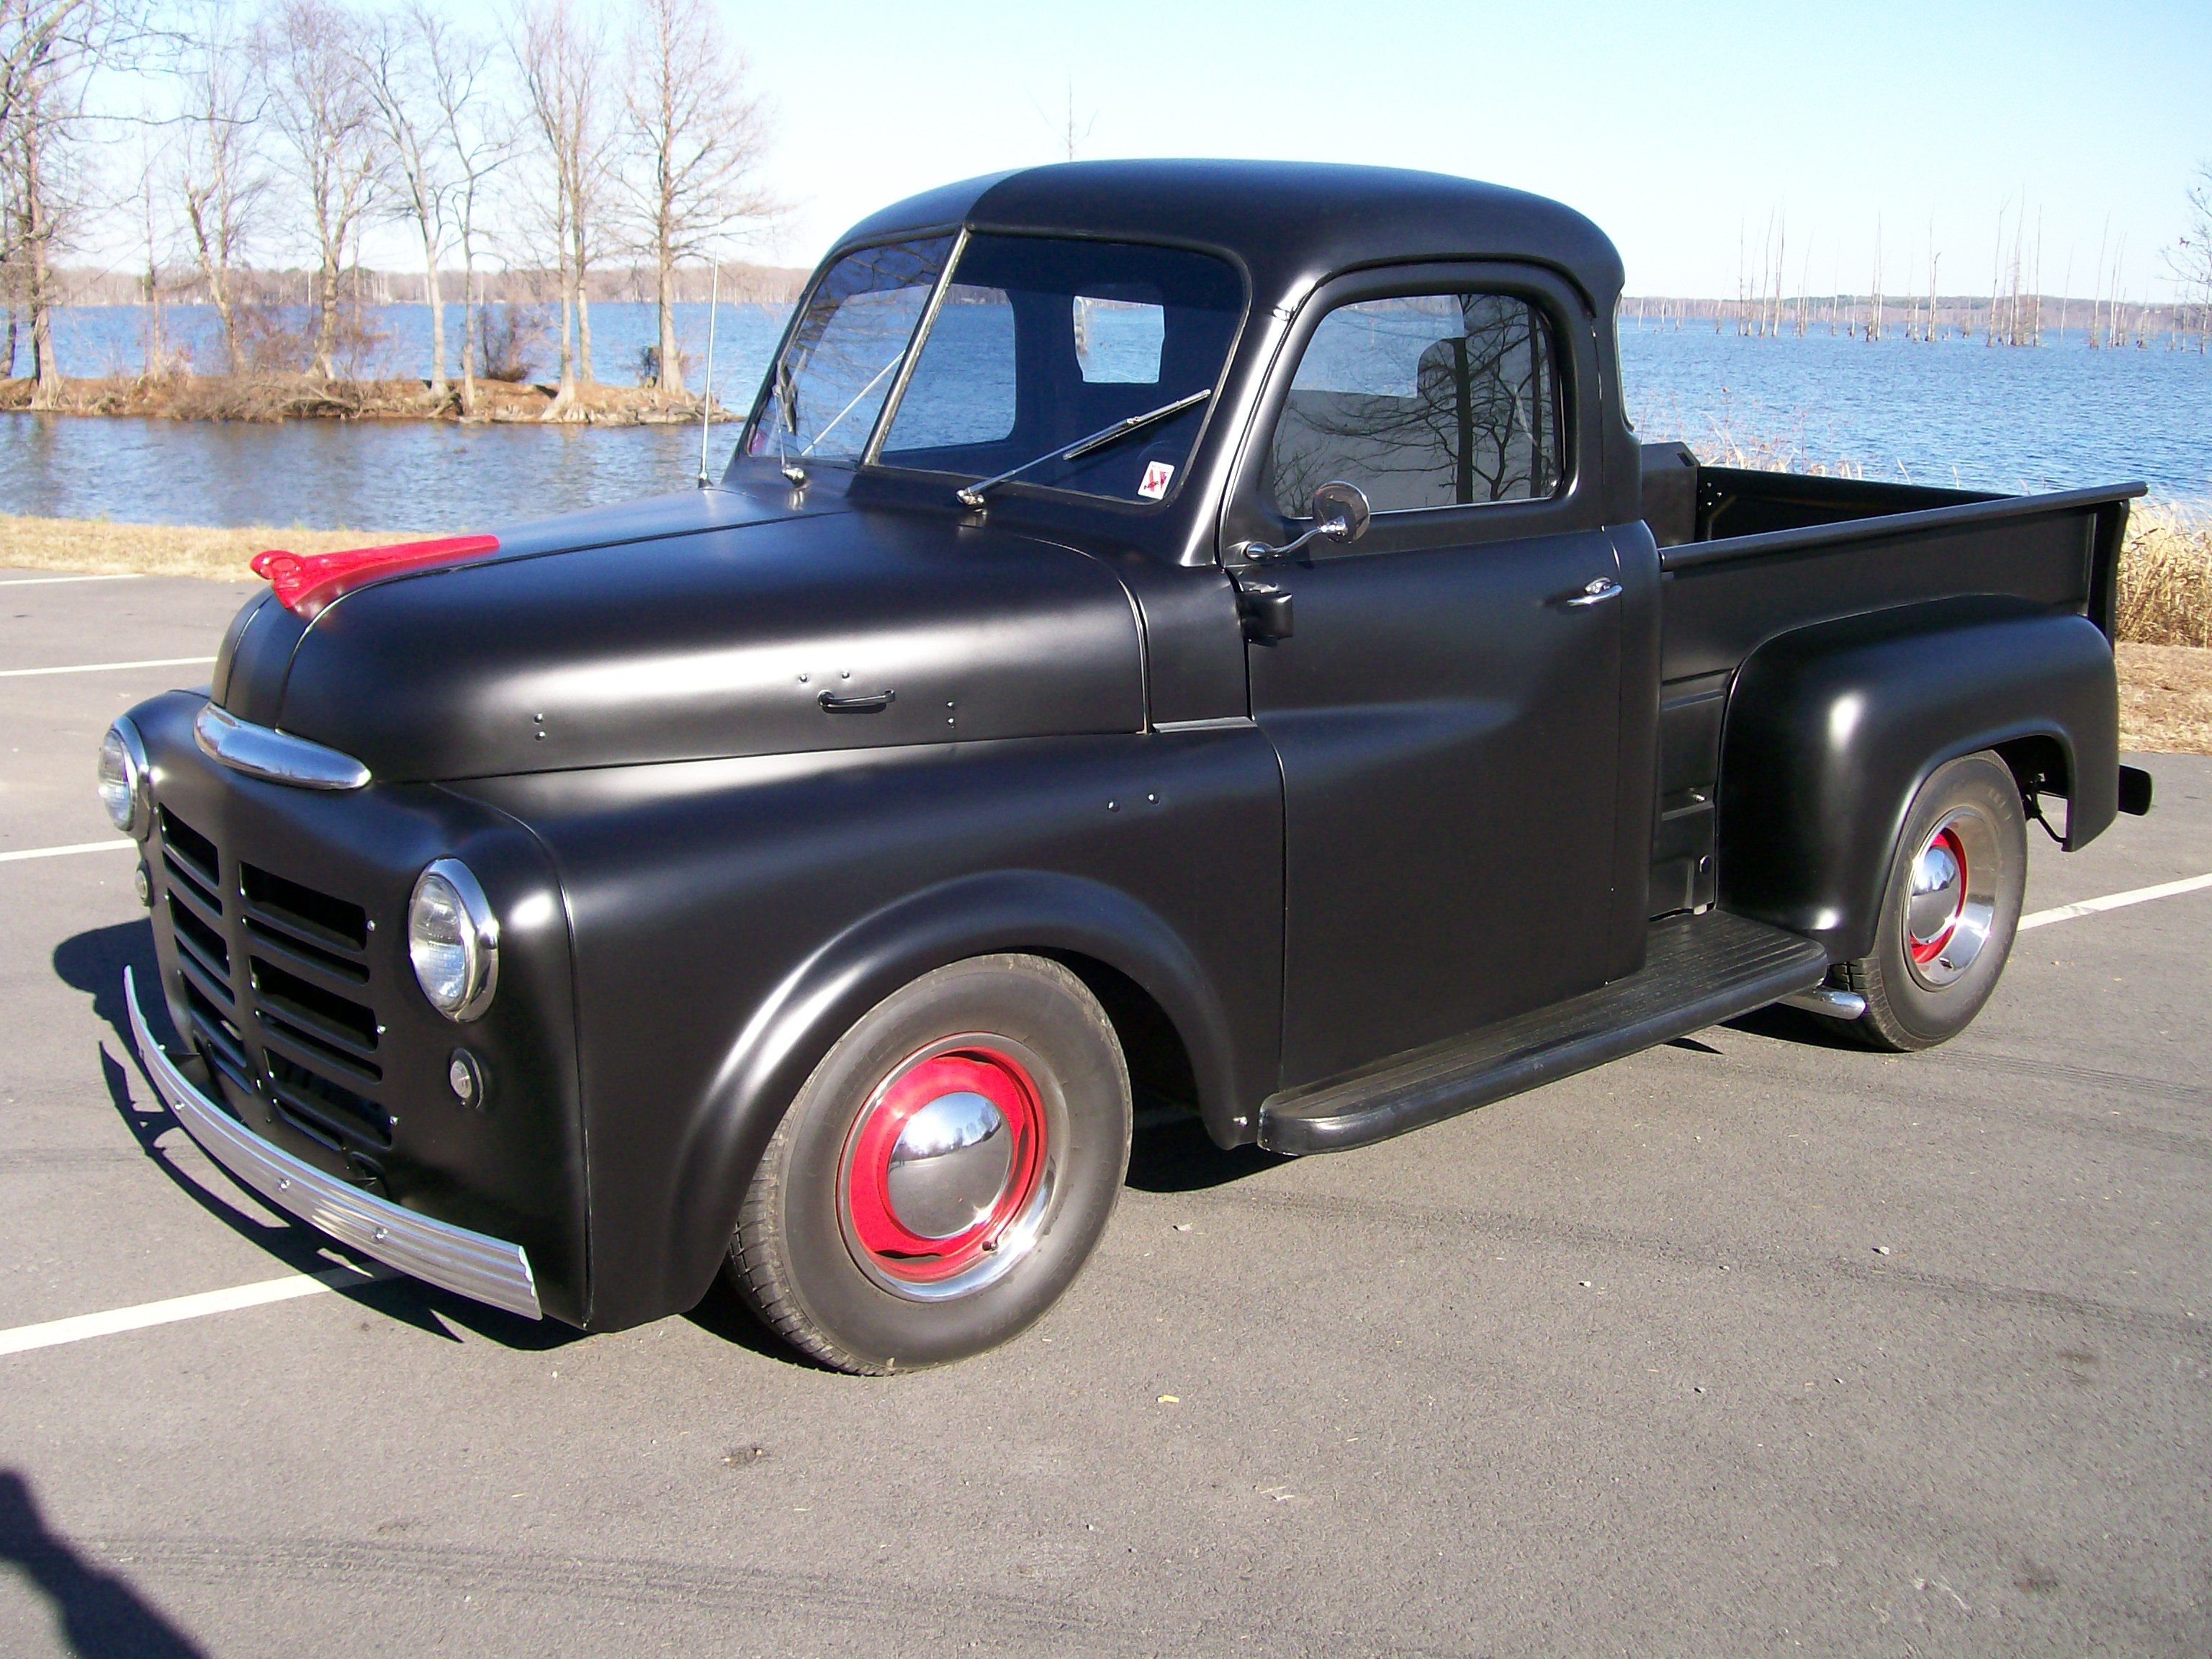 1949 dodge pickup my husband built 49 dodge trucks pinterest dodge trucks dodge and trucks. Black Bedroom Furniture Sets. Home Design Ideas